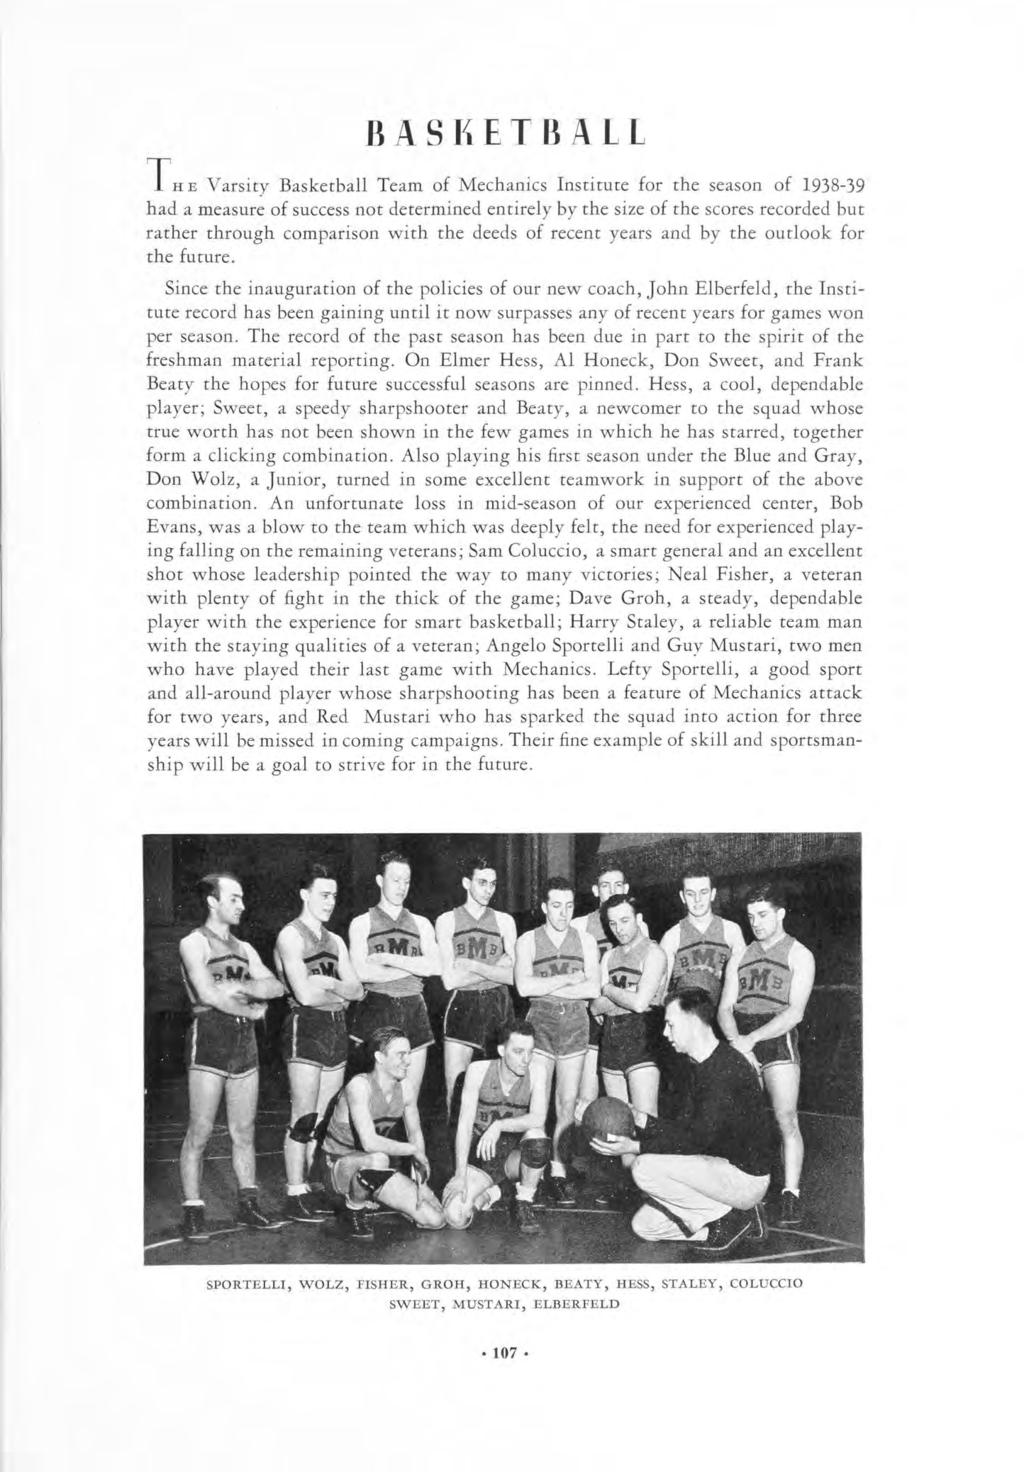 BASKETBALL THE Varsity Basketball Team of Mechanics Institute for the season of 1938-39 had a measure of success not determined entirely by the size of the scores recorded but rather through